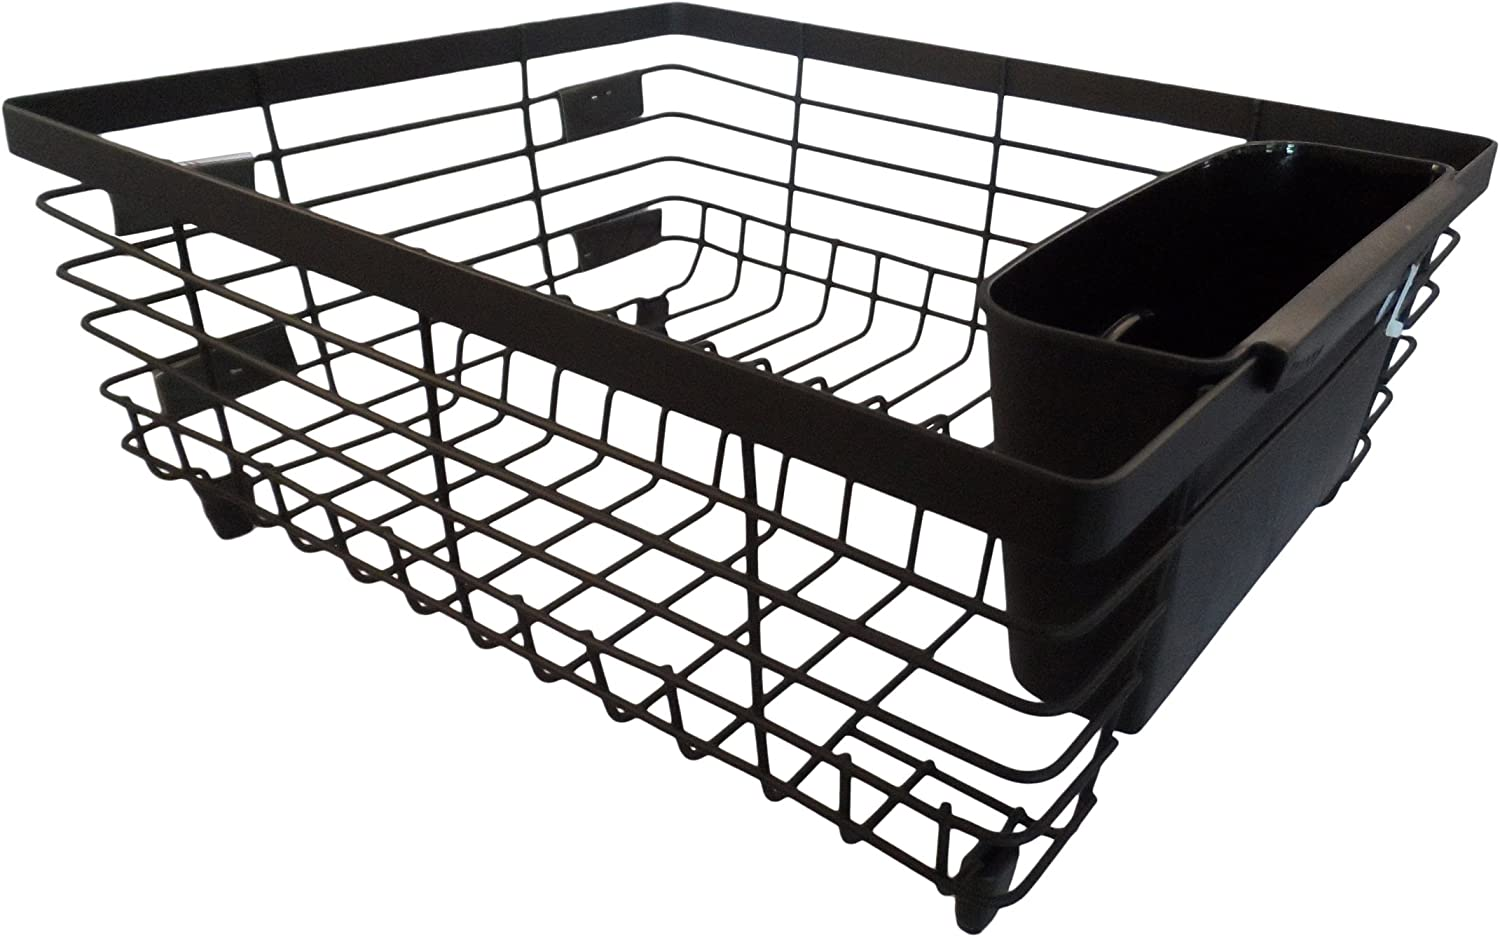 Kitchen Details Flat Wire Countertop or Over The Sink Dish Drying Rack with Cutlery Basket, Black